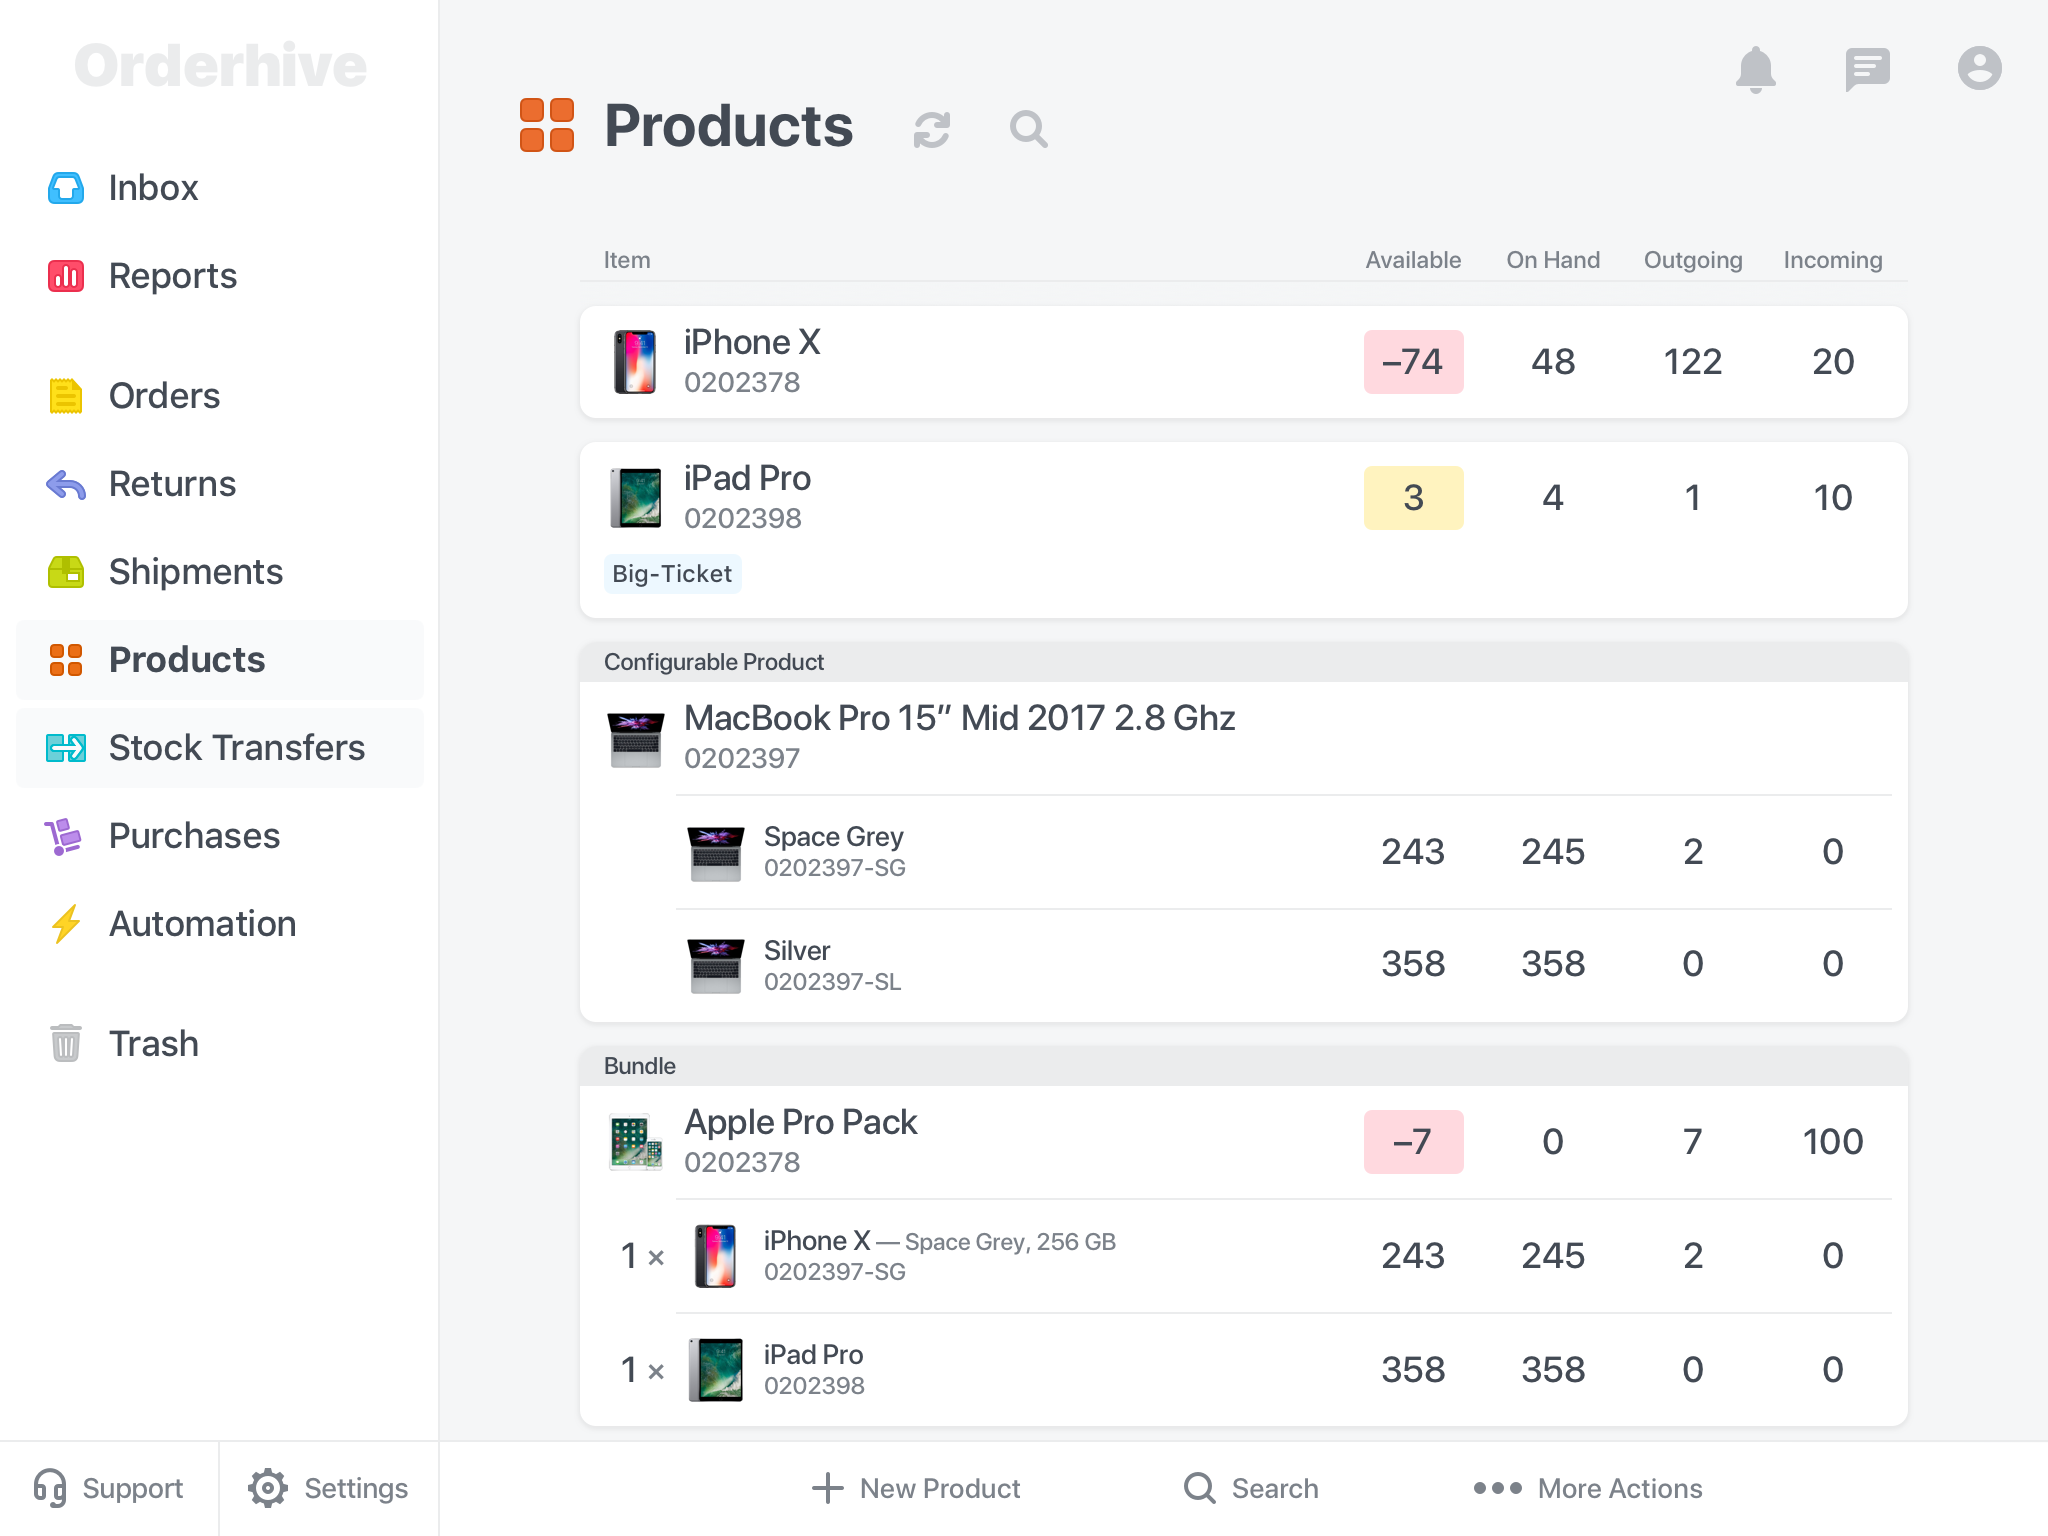 Inventory tracking in Orderhive